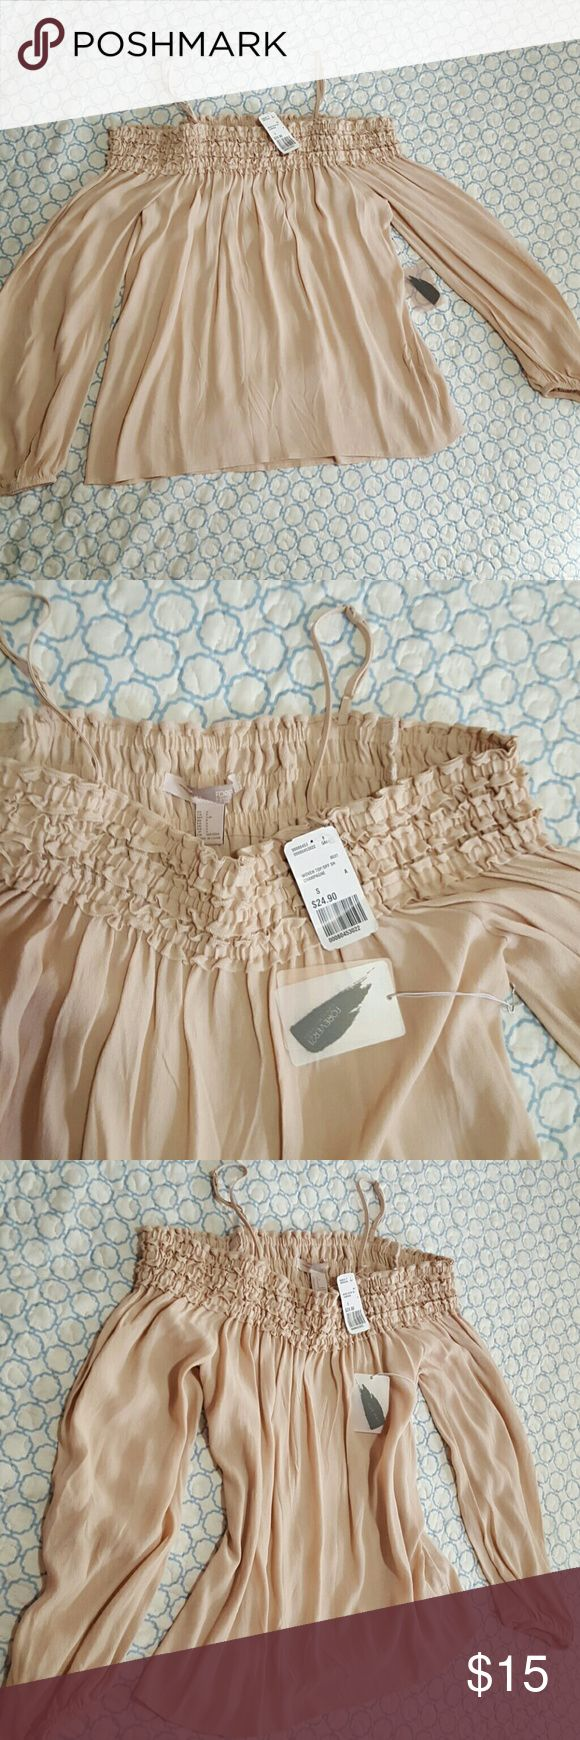 F21 Off-Shoulder blouse Small Brand new, gorgeous champagne colored blouse. Forever 21 Tops Blouses